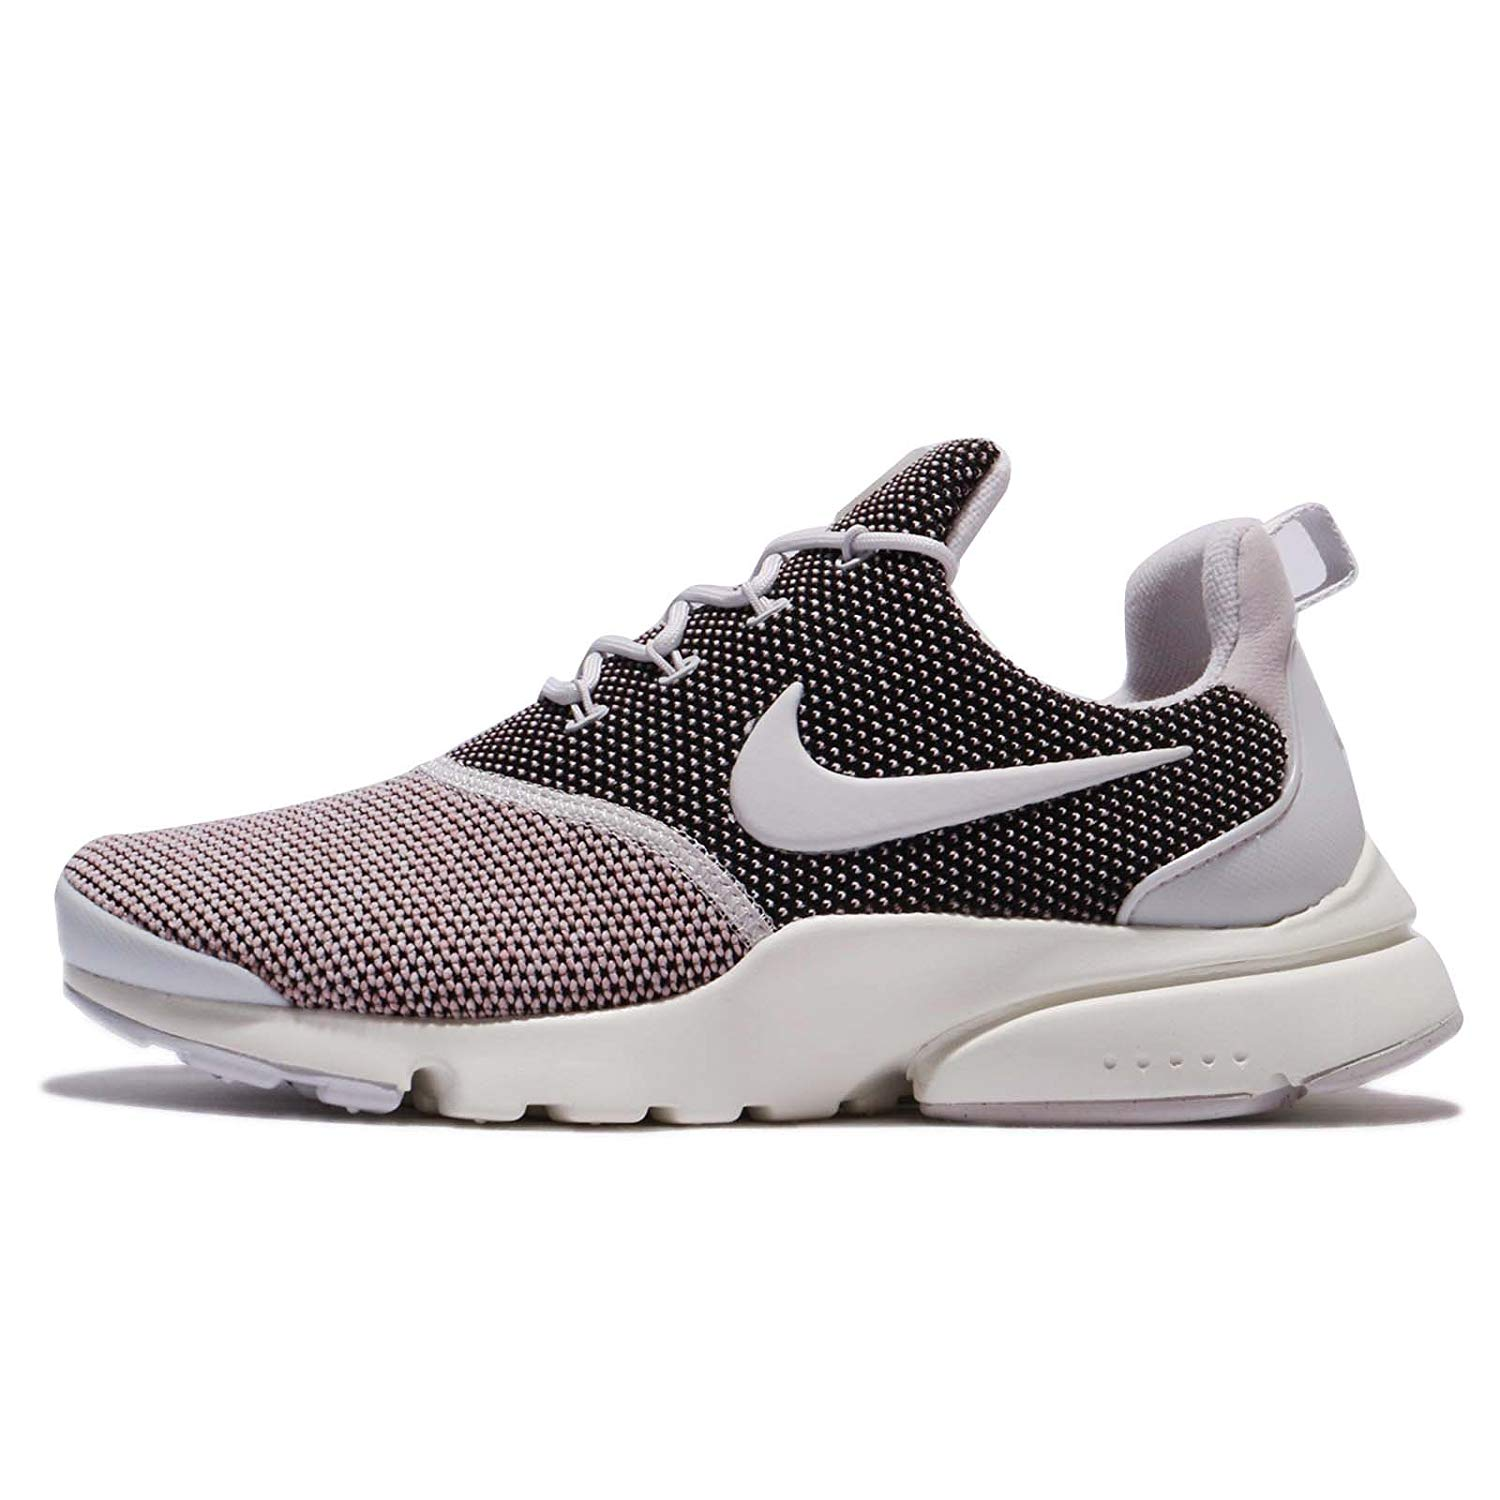 7cccfa7bf4c404 Details about Nike Women s Presto Fly Running Shoes